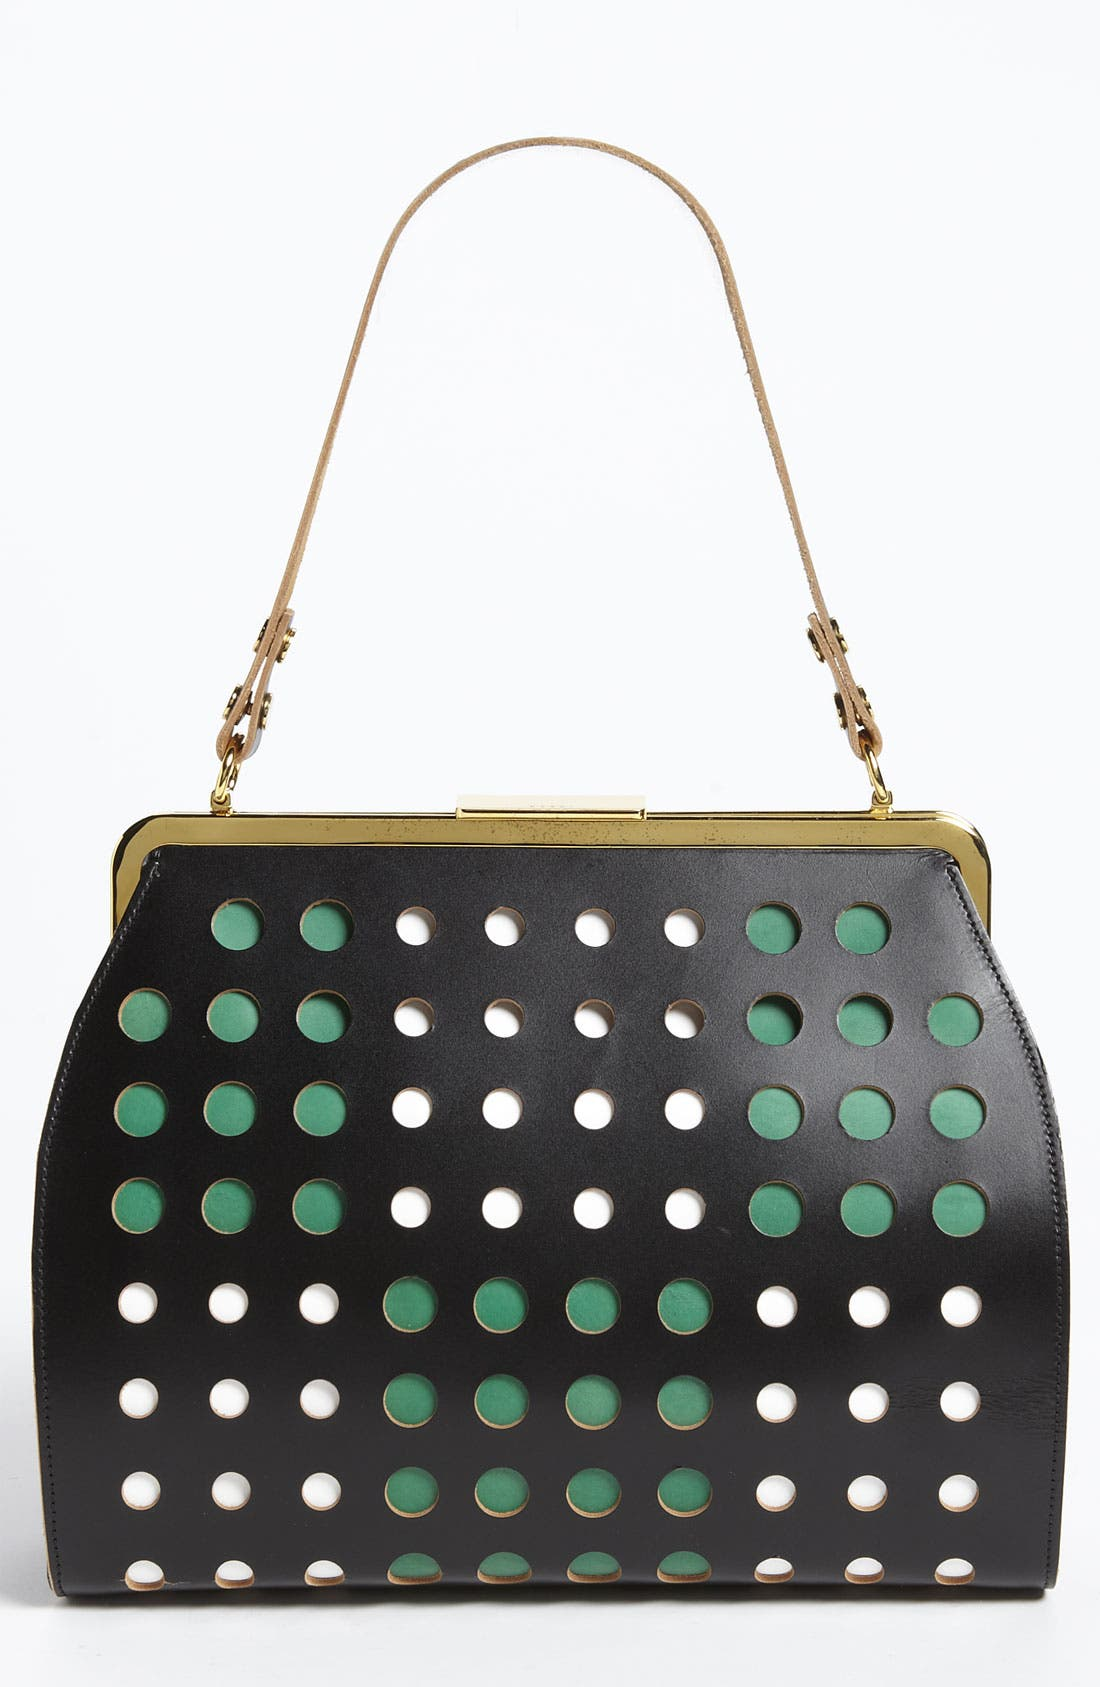 Alternate Image 1 Selected - Marni Polka Dot Frame Handbag